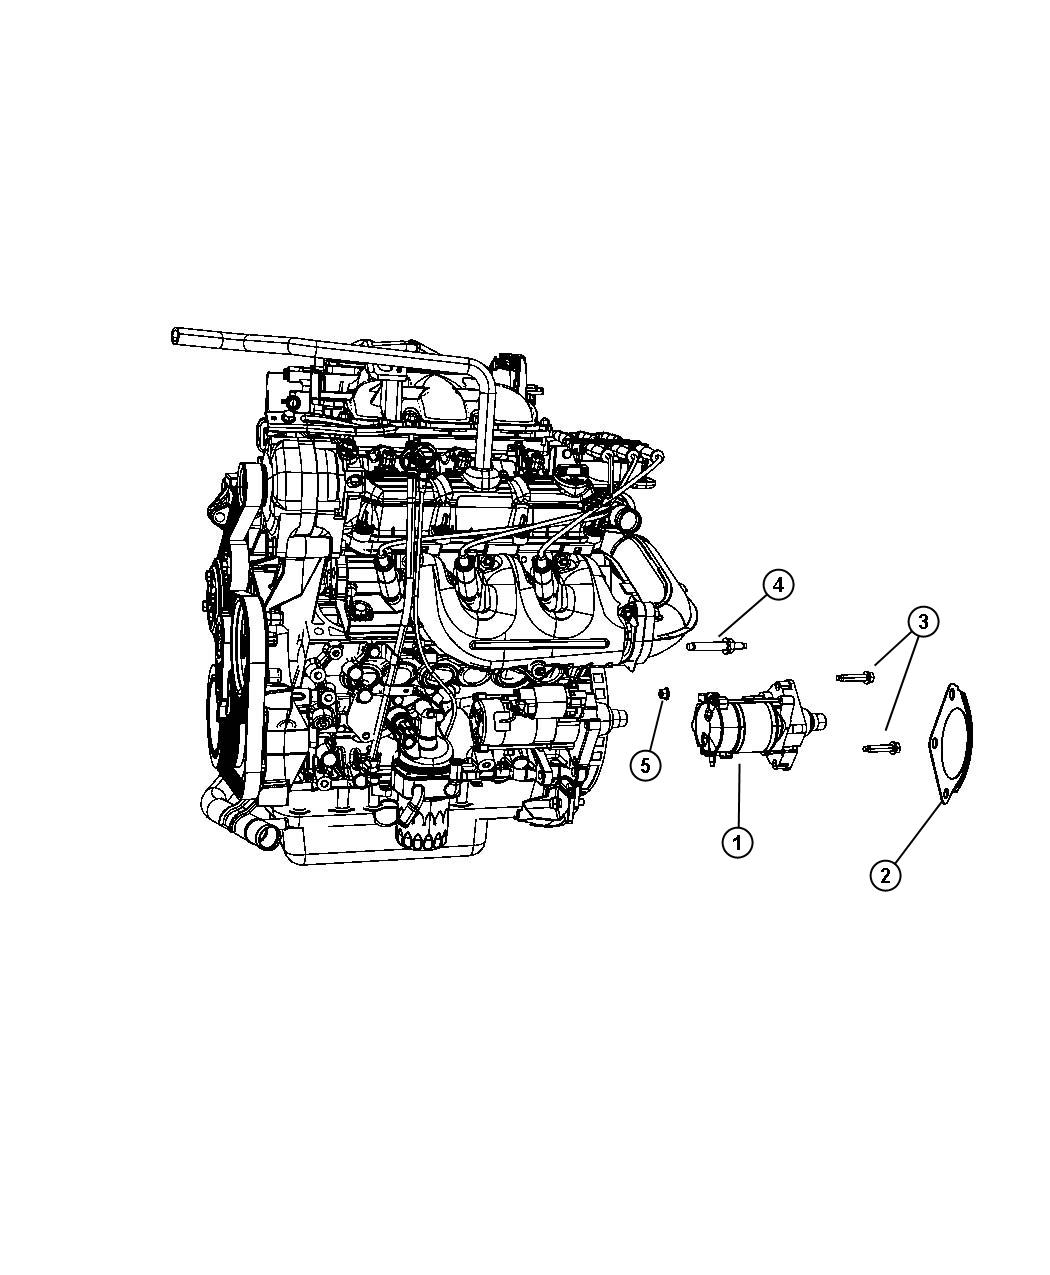 Chrysler Town & Country Starter. Engine. Starters, related